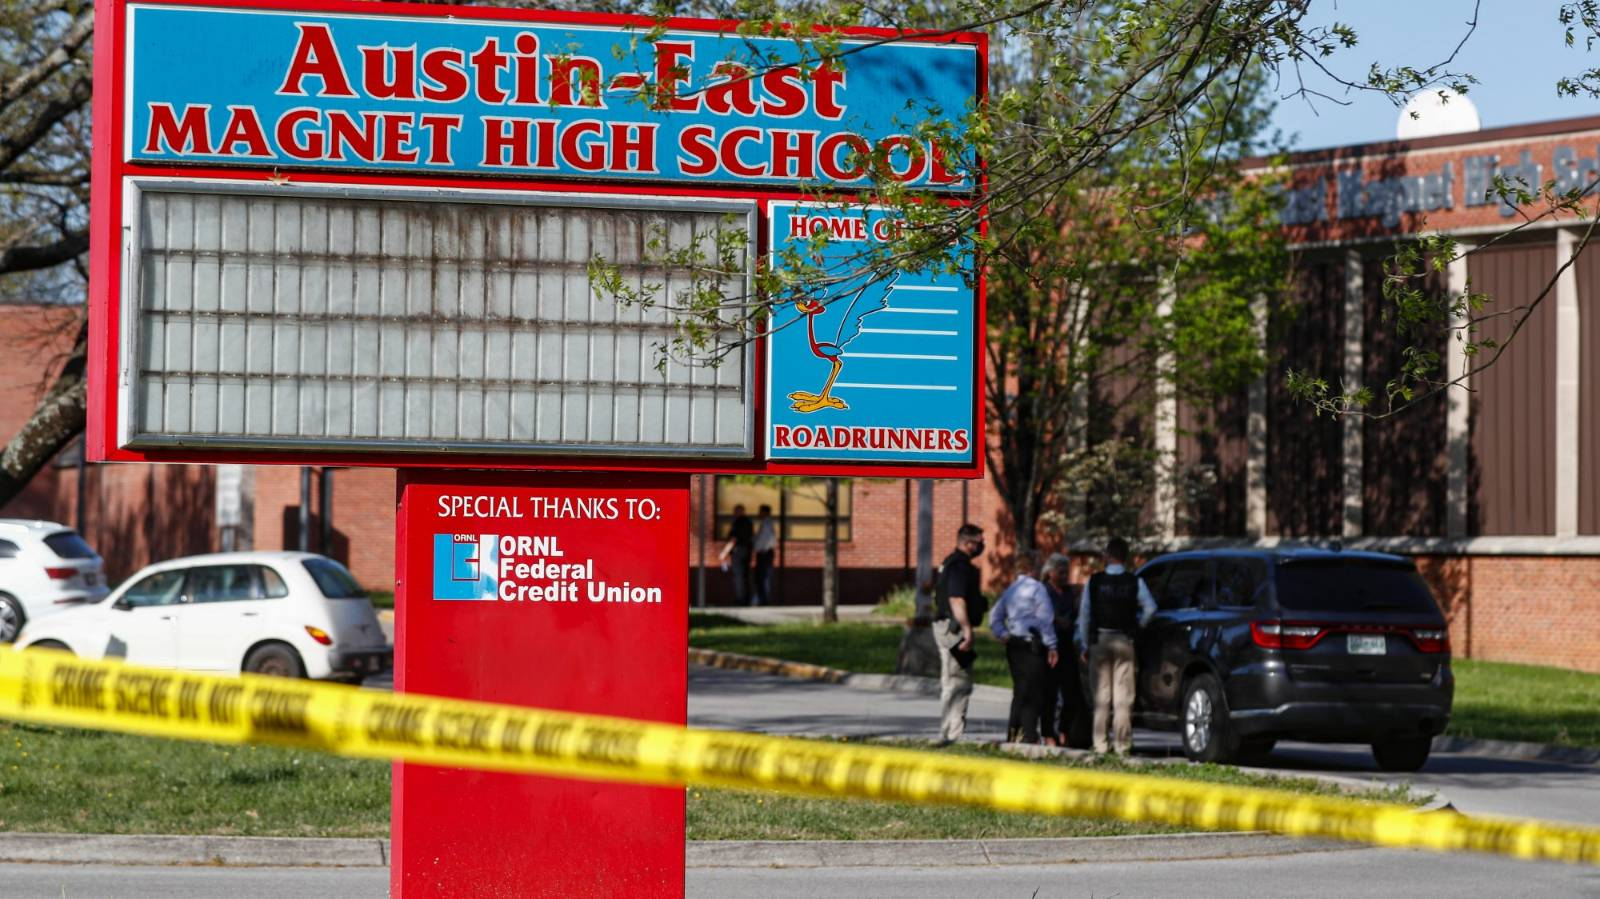 US police shoot dead high school student after he opened fire on advancing officers